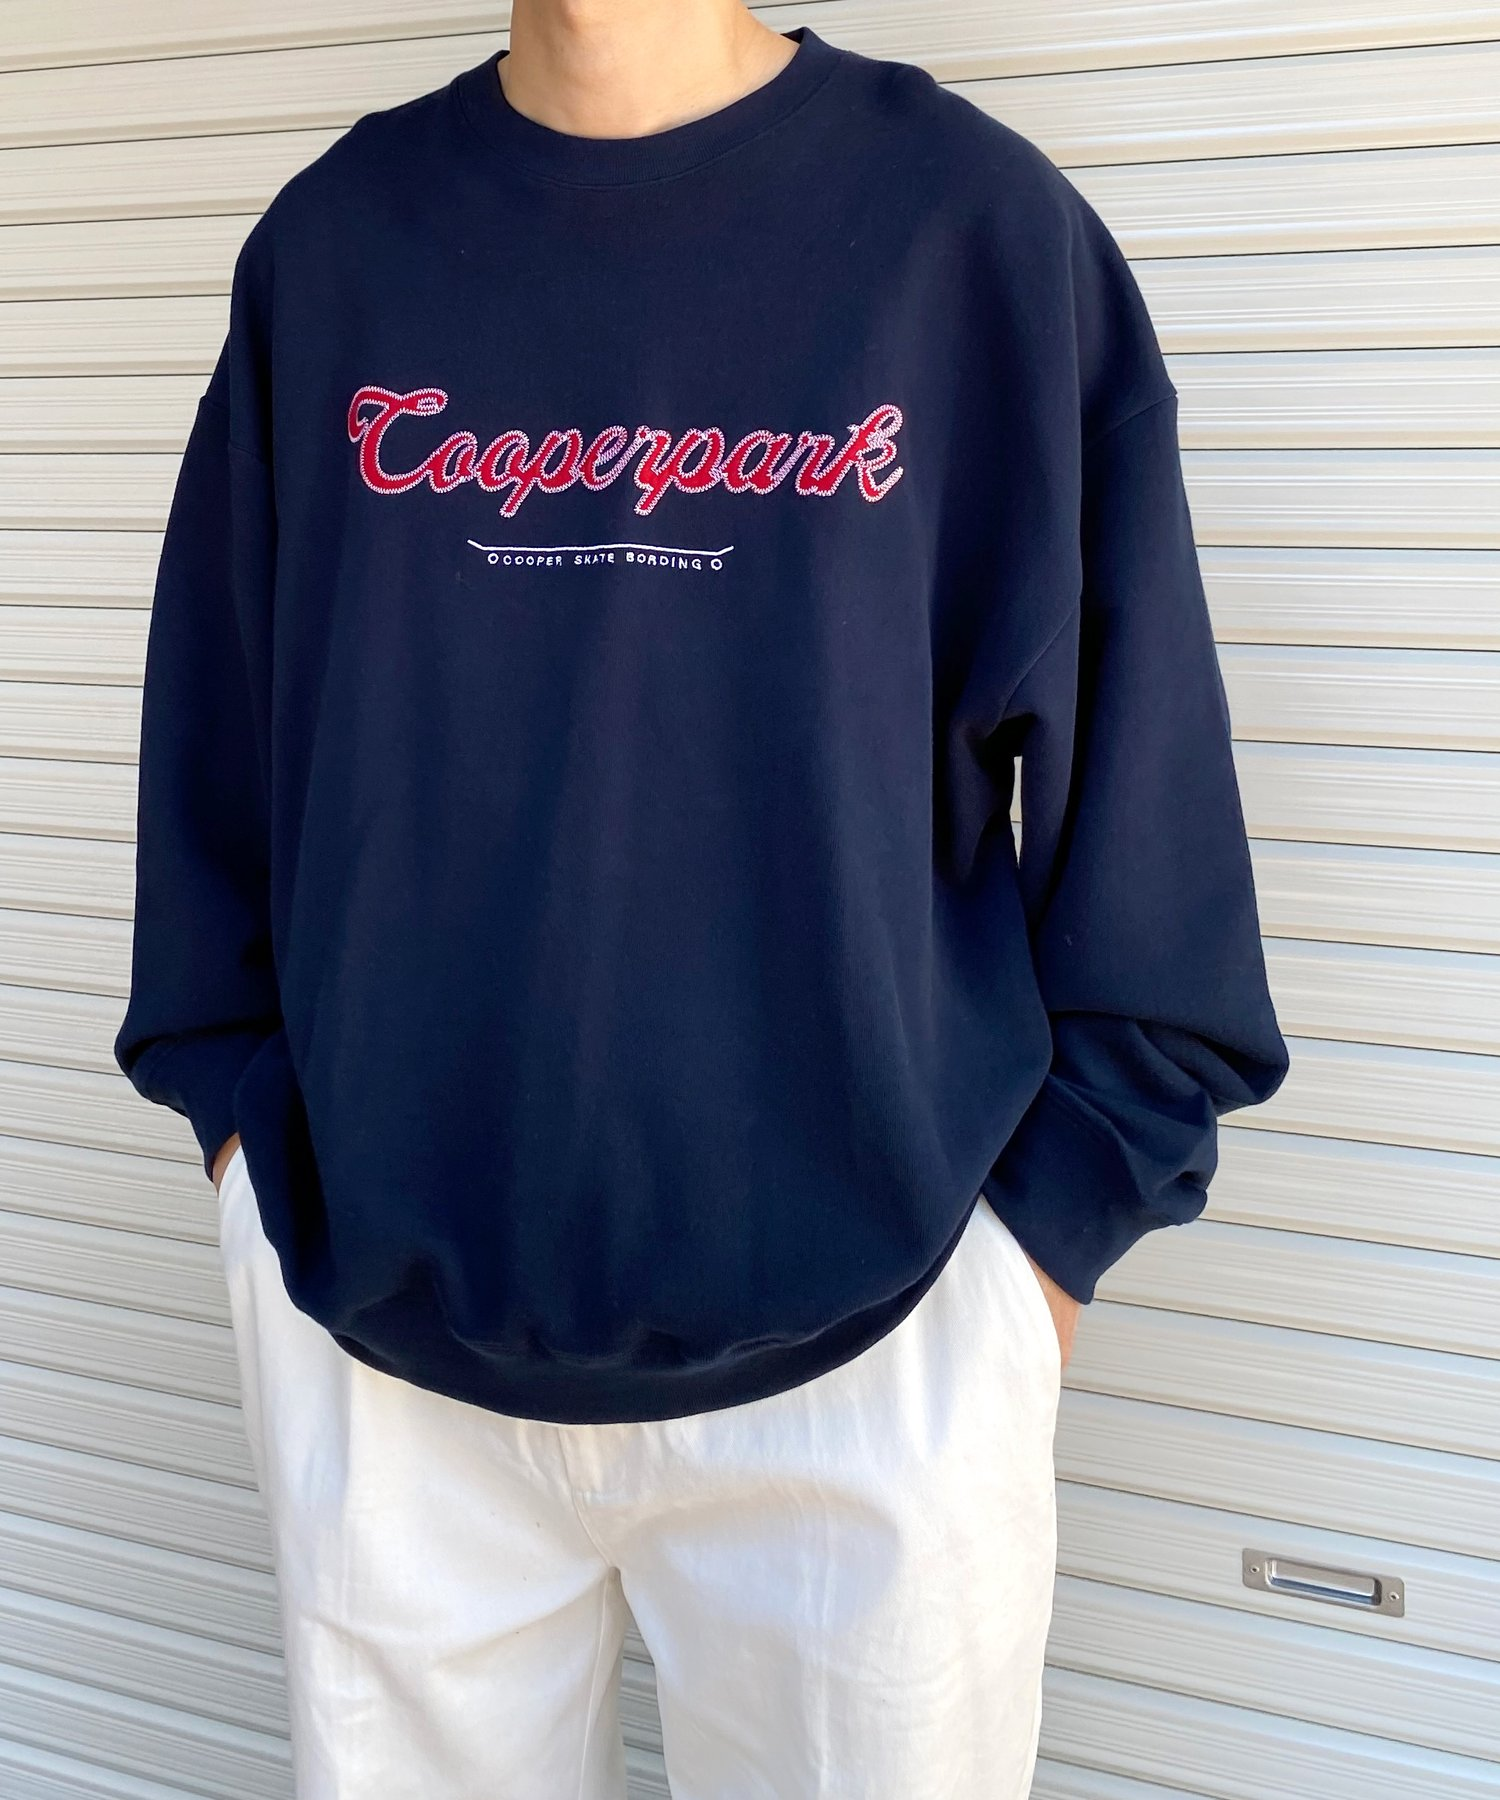 WHO'S WHO gallery(フーズフーギャラリー) COOPERPARK ワッペンカレッジクルー